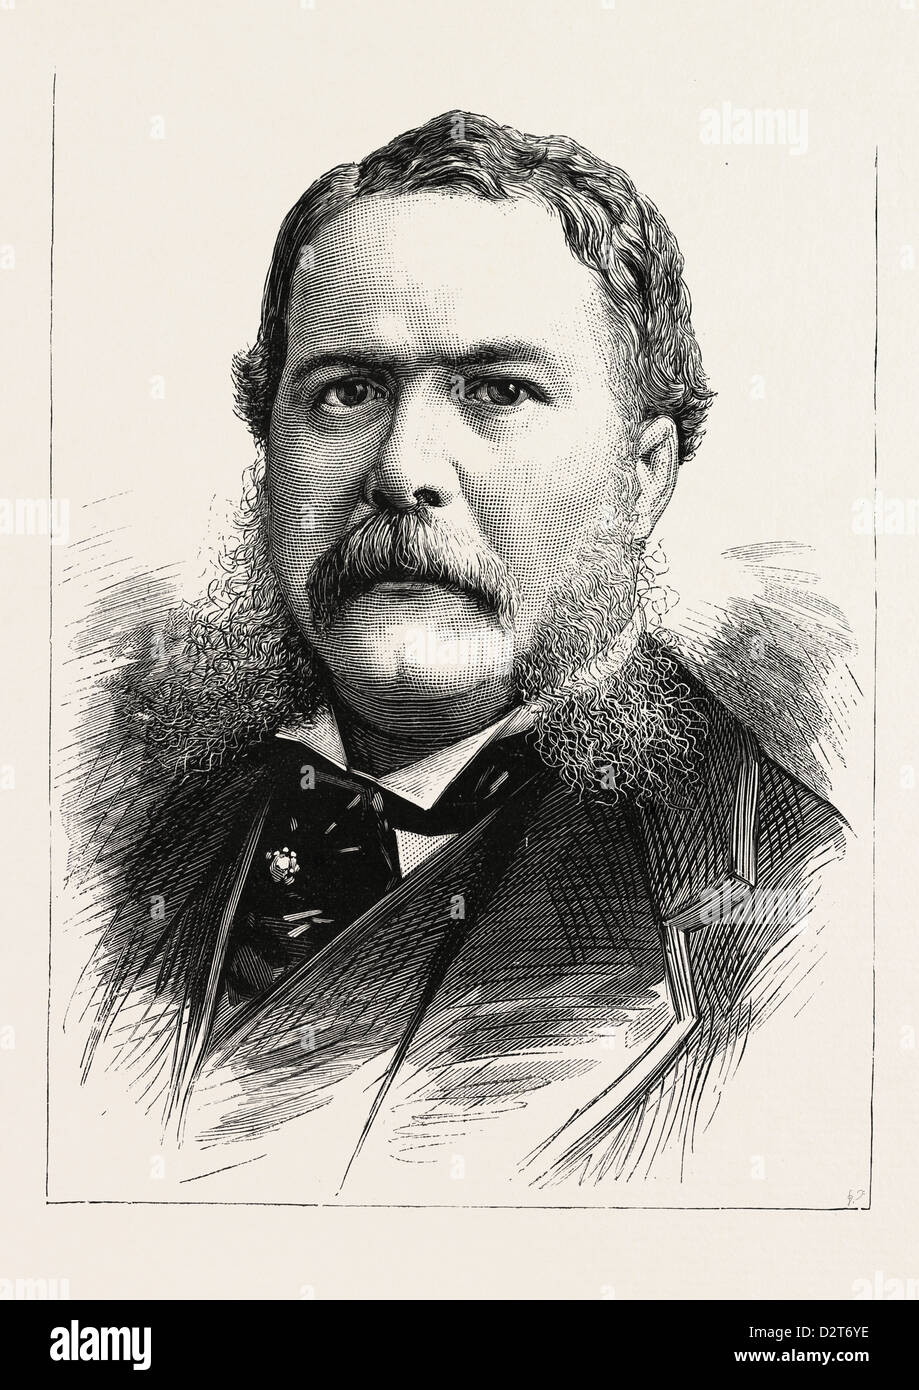 GENERAL CHESTER A. ARTHUR, VICE-PRESIDENT-ELECT OF THE UNITED STATES, U.S., engraving 1880 1881 - Stock Image